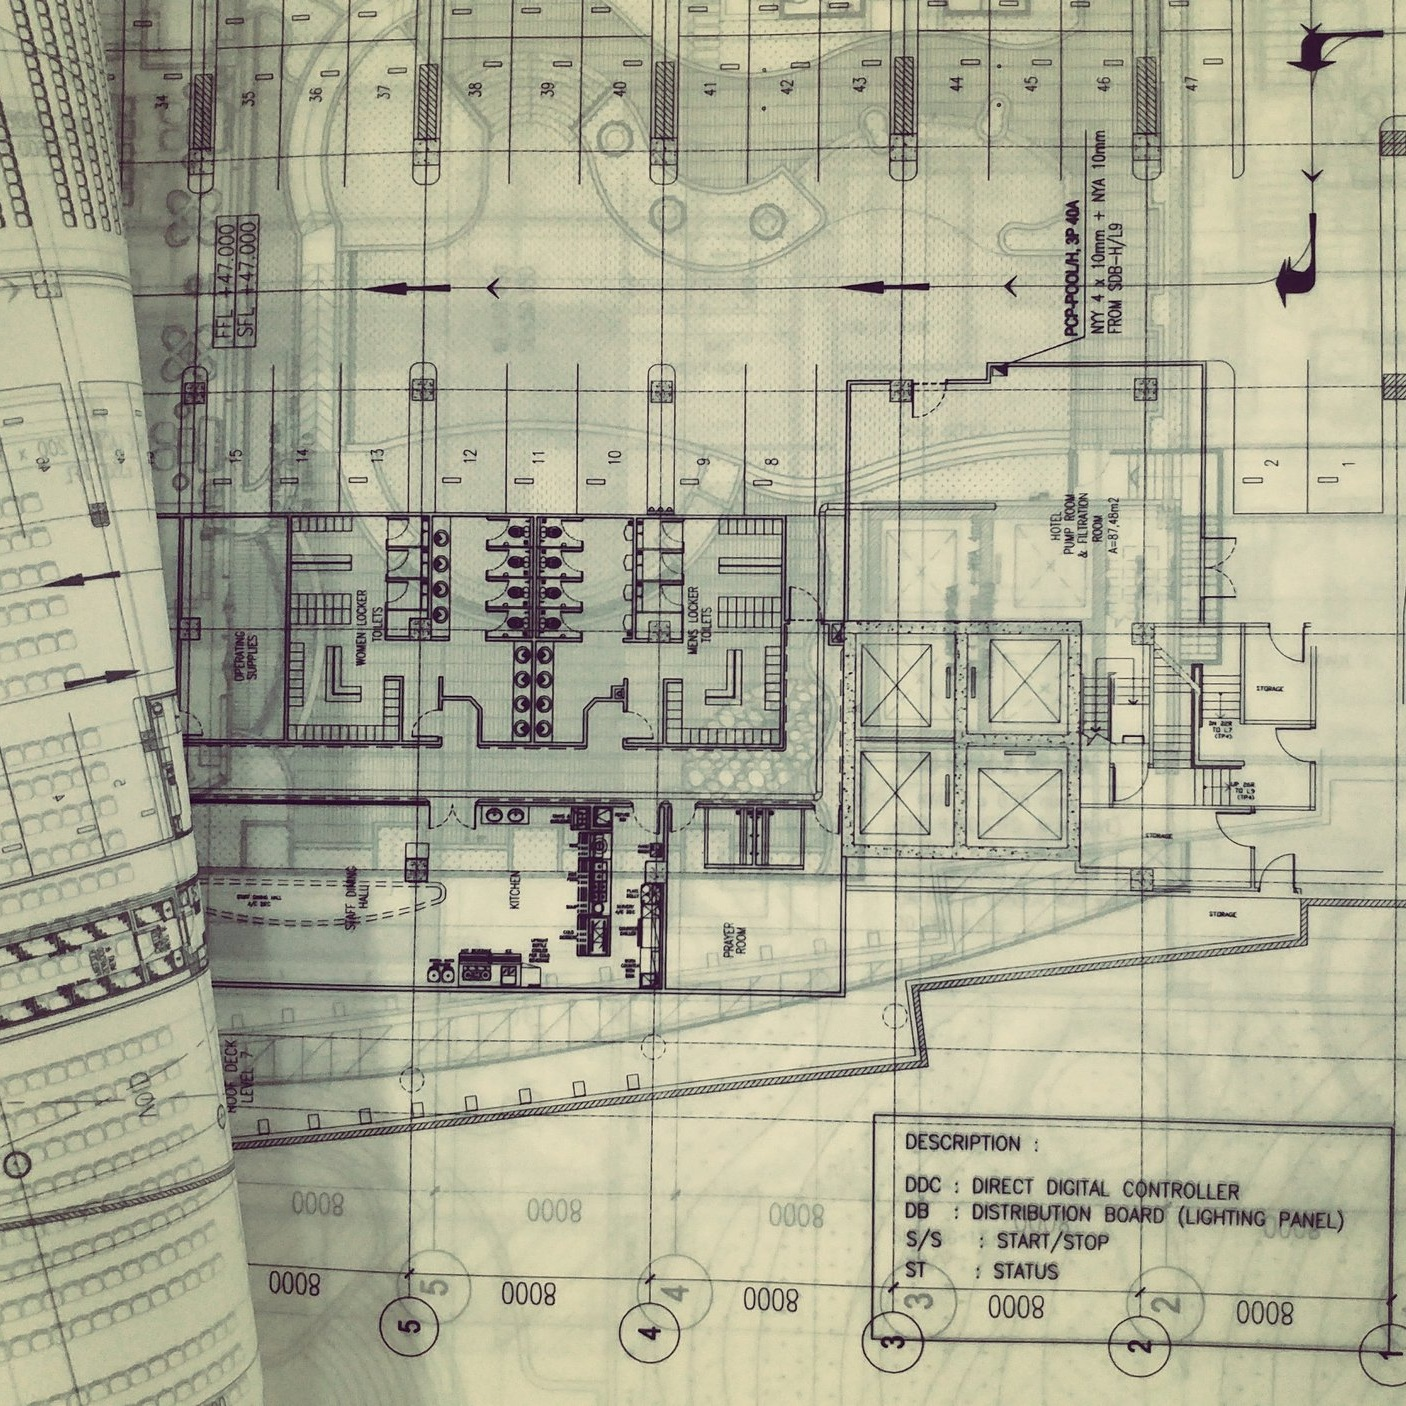 Soundproofing Construction Drawings - Construction detail drawings for soundproofing systems